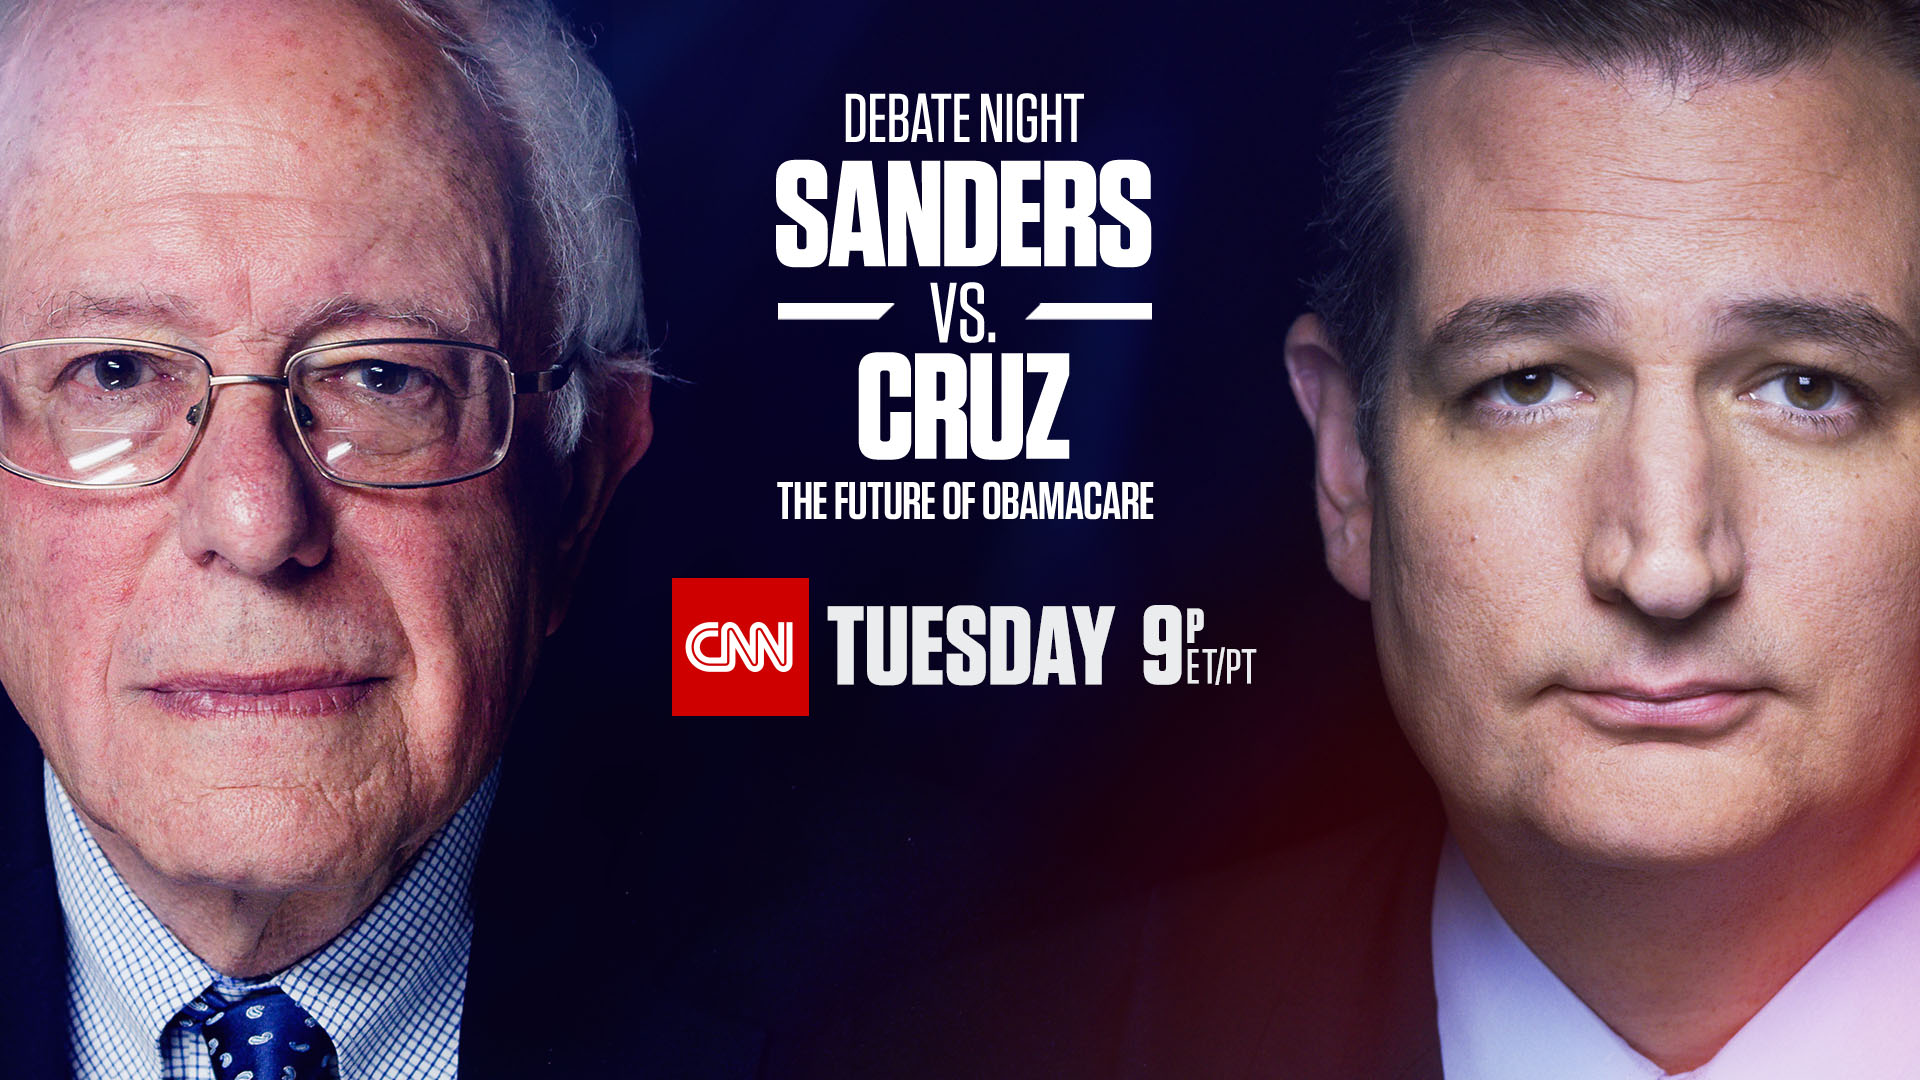 CNN to Host Debate Night with Bernie Sanders and Ted Cruz on Feb. 7